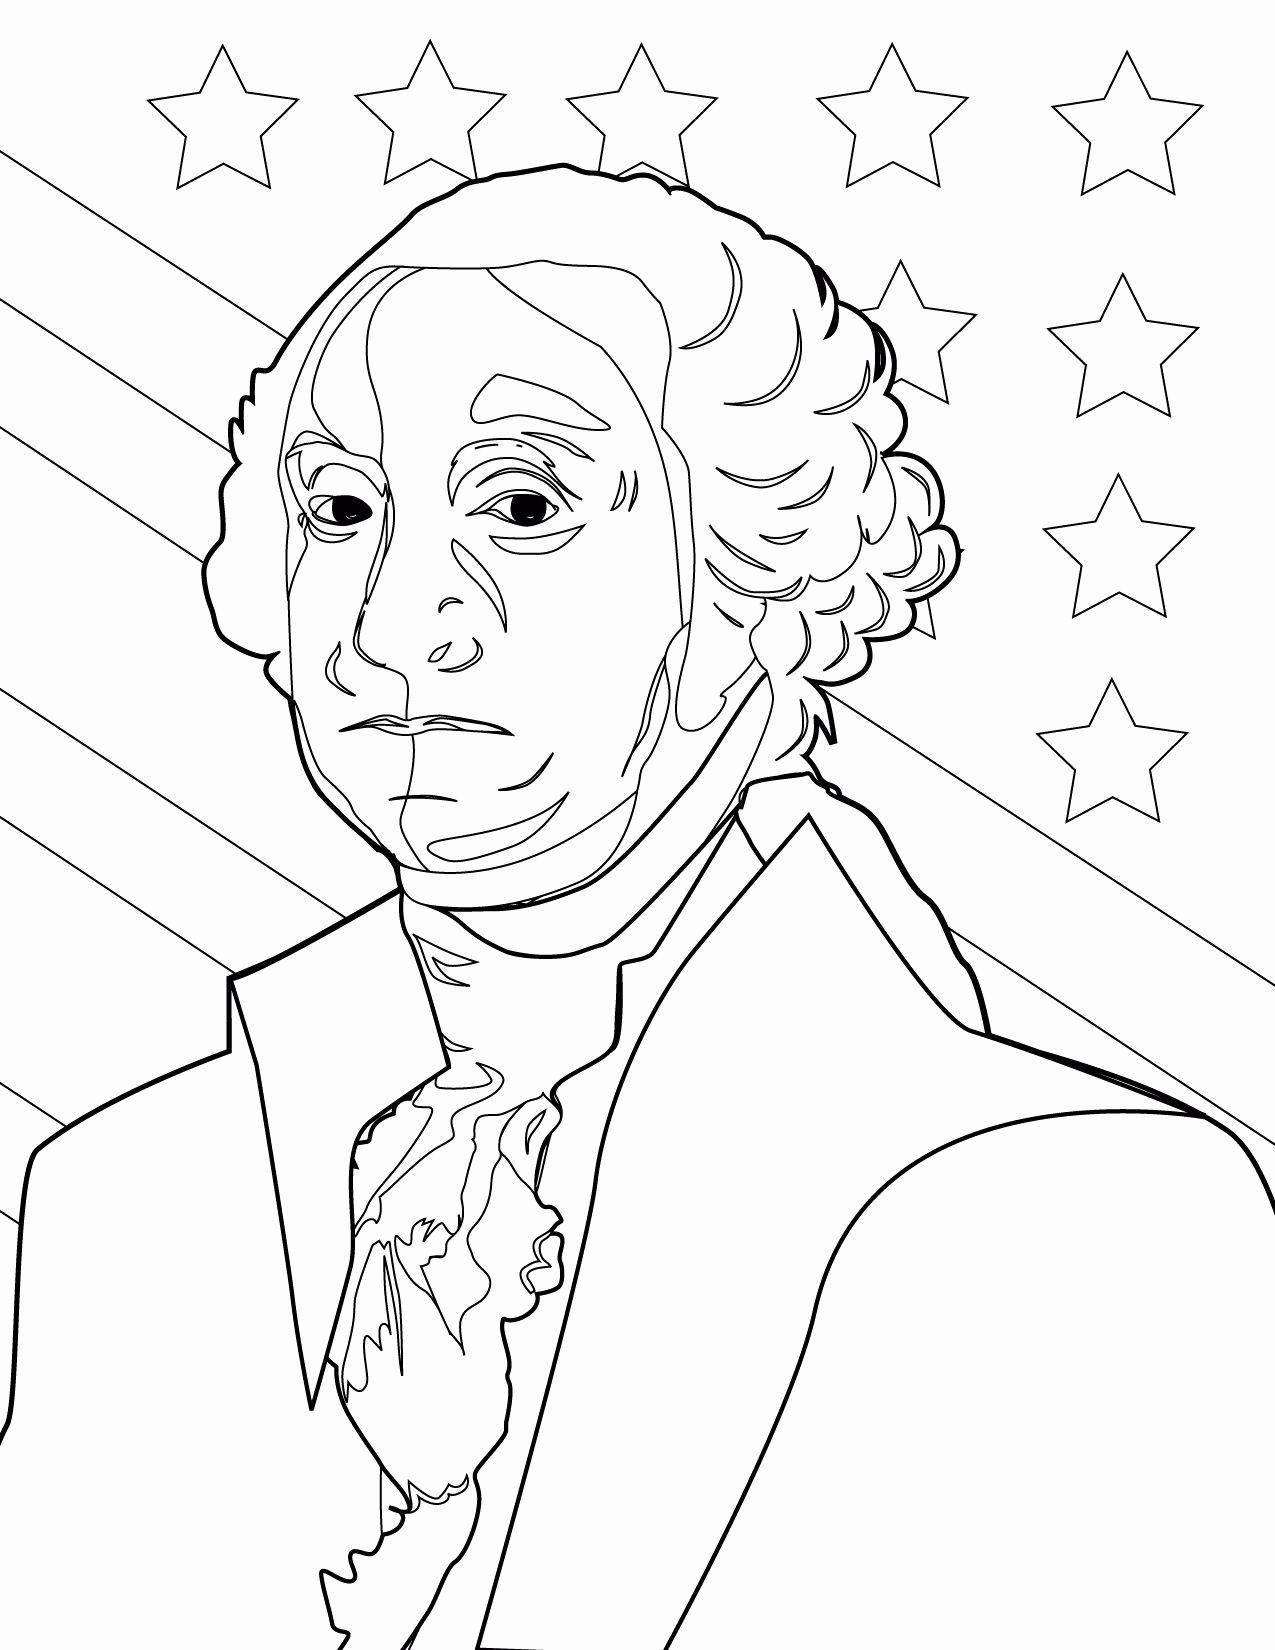 George Washington Coloring Page Unique George Washington